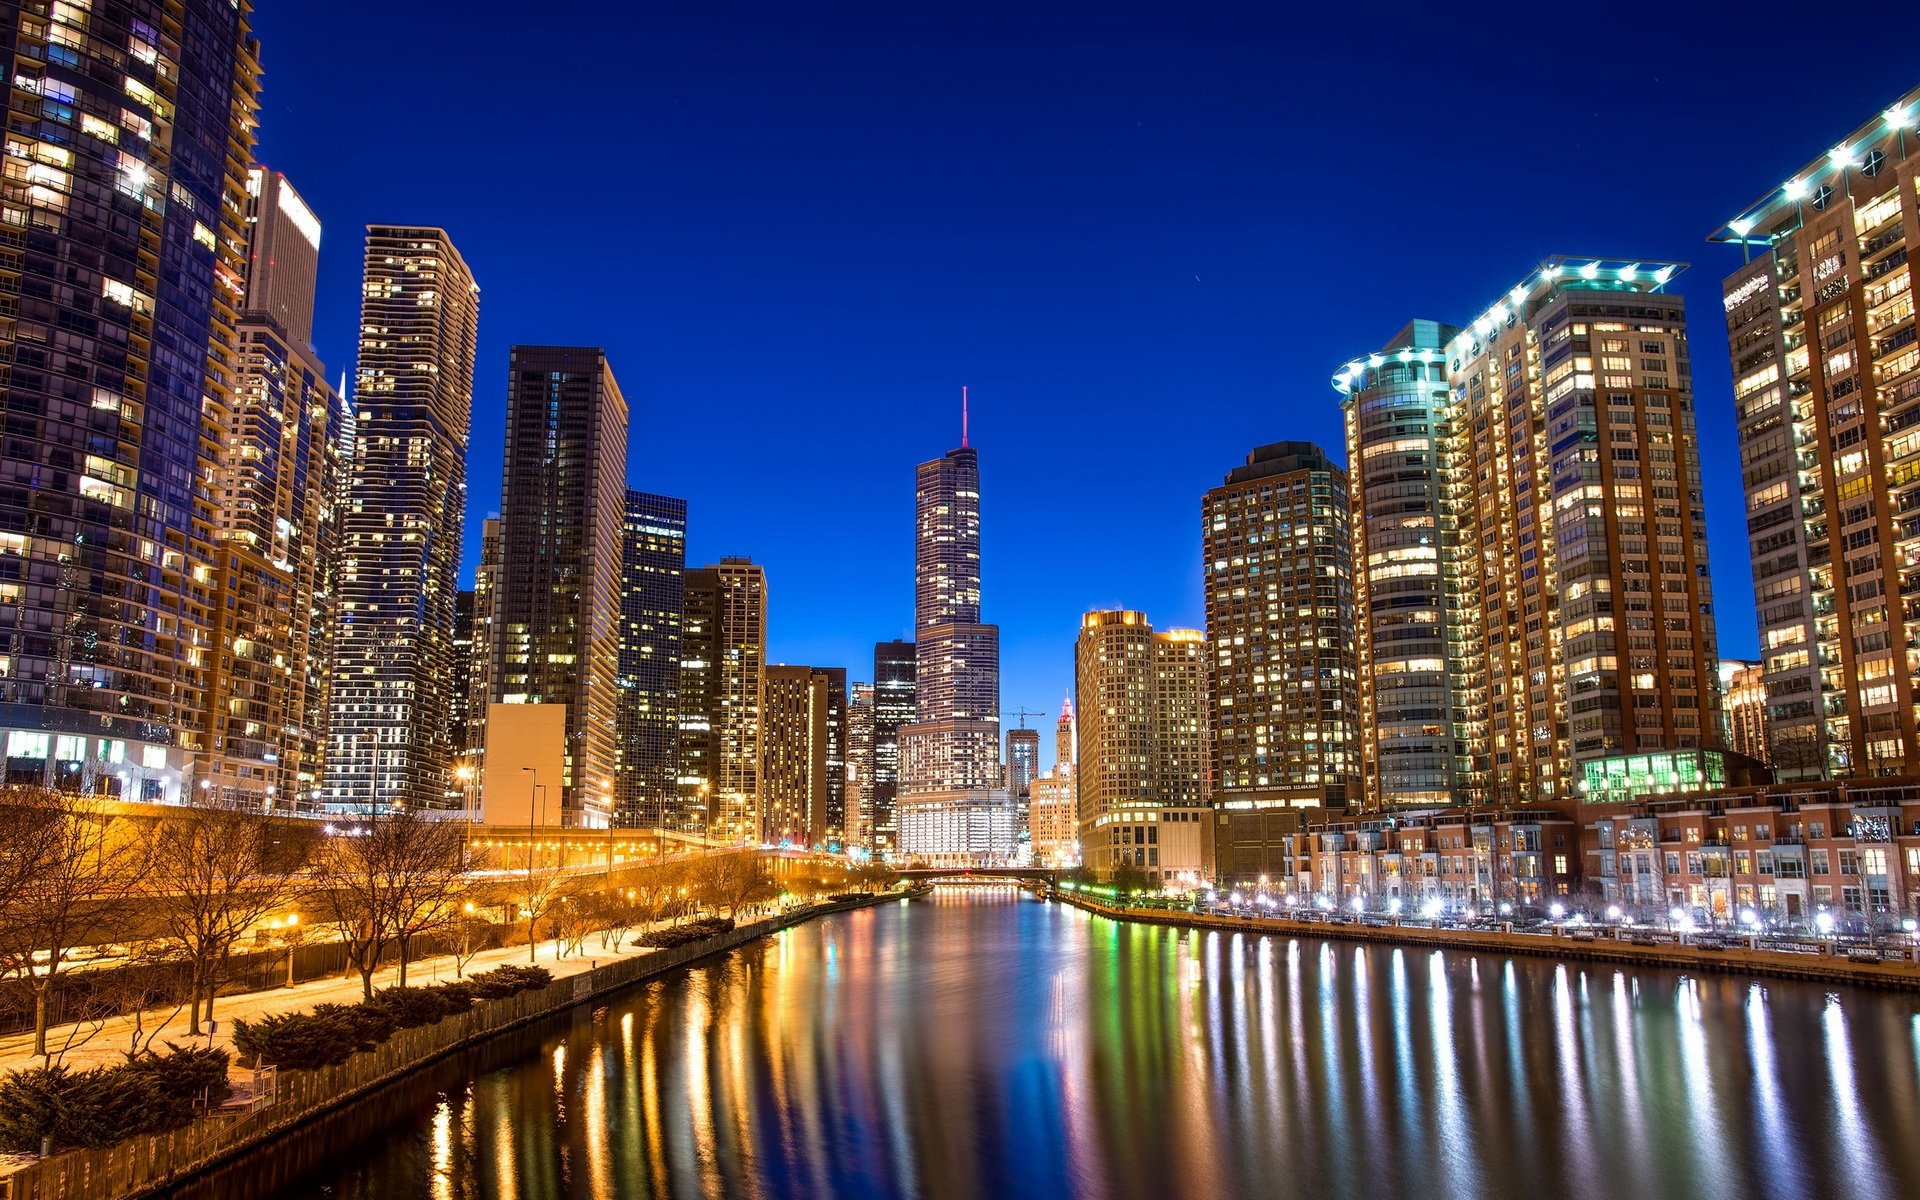 Chicago HD Wallpaper Background Image 1920x1200 ID426700 1920x1200